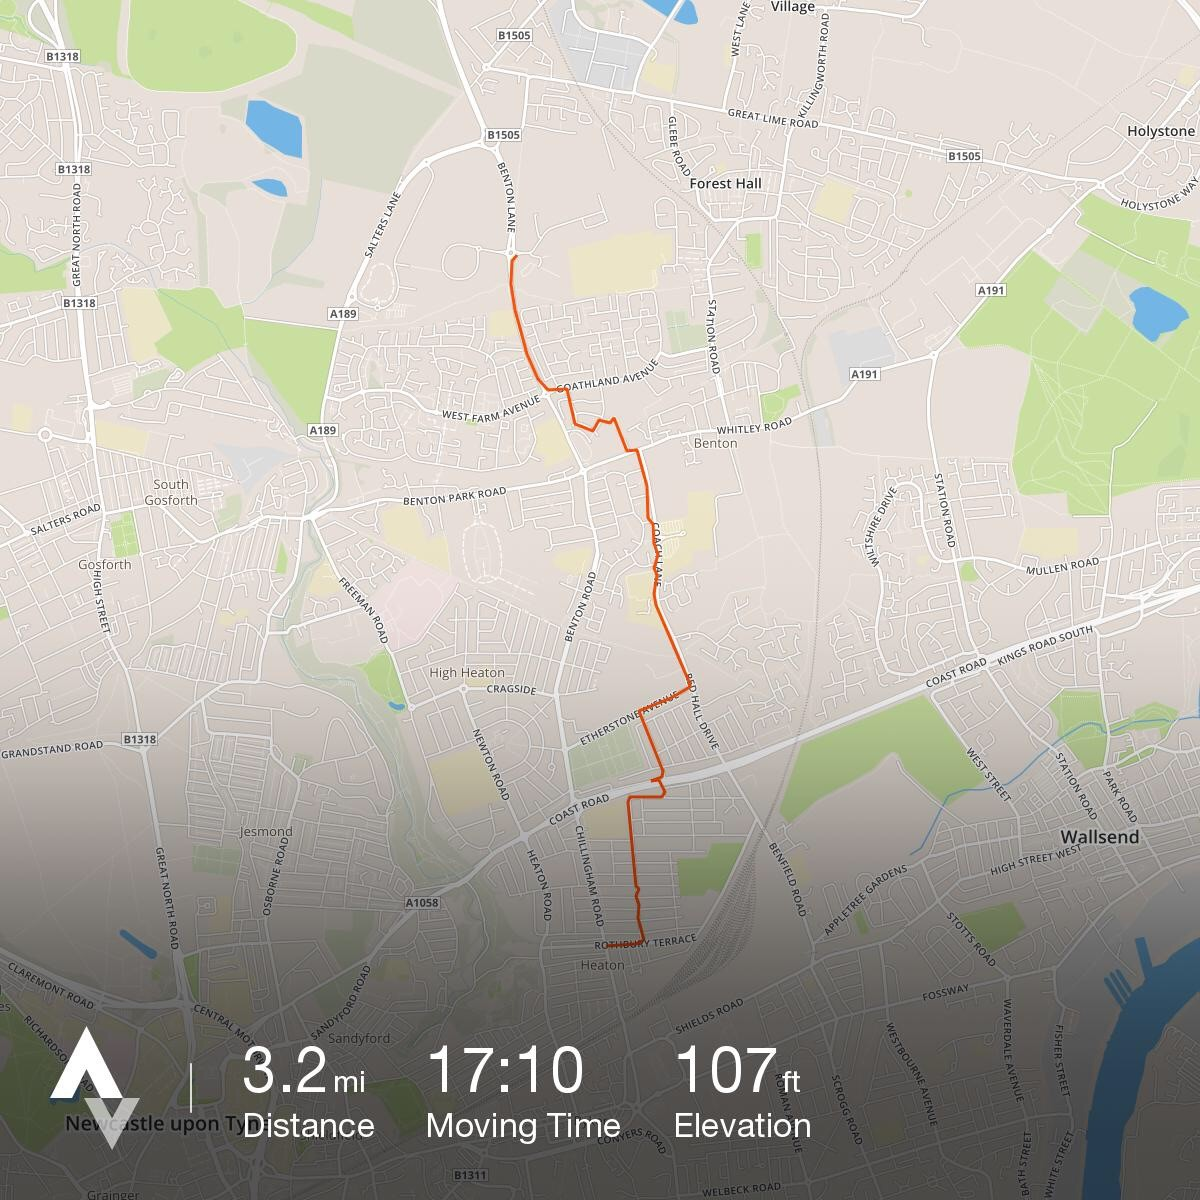 Bike train: Heaton to Quorum